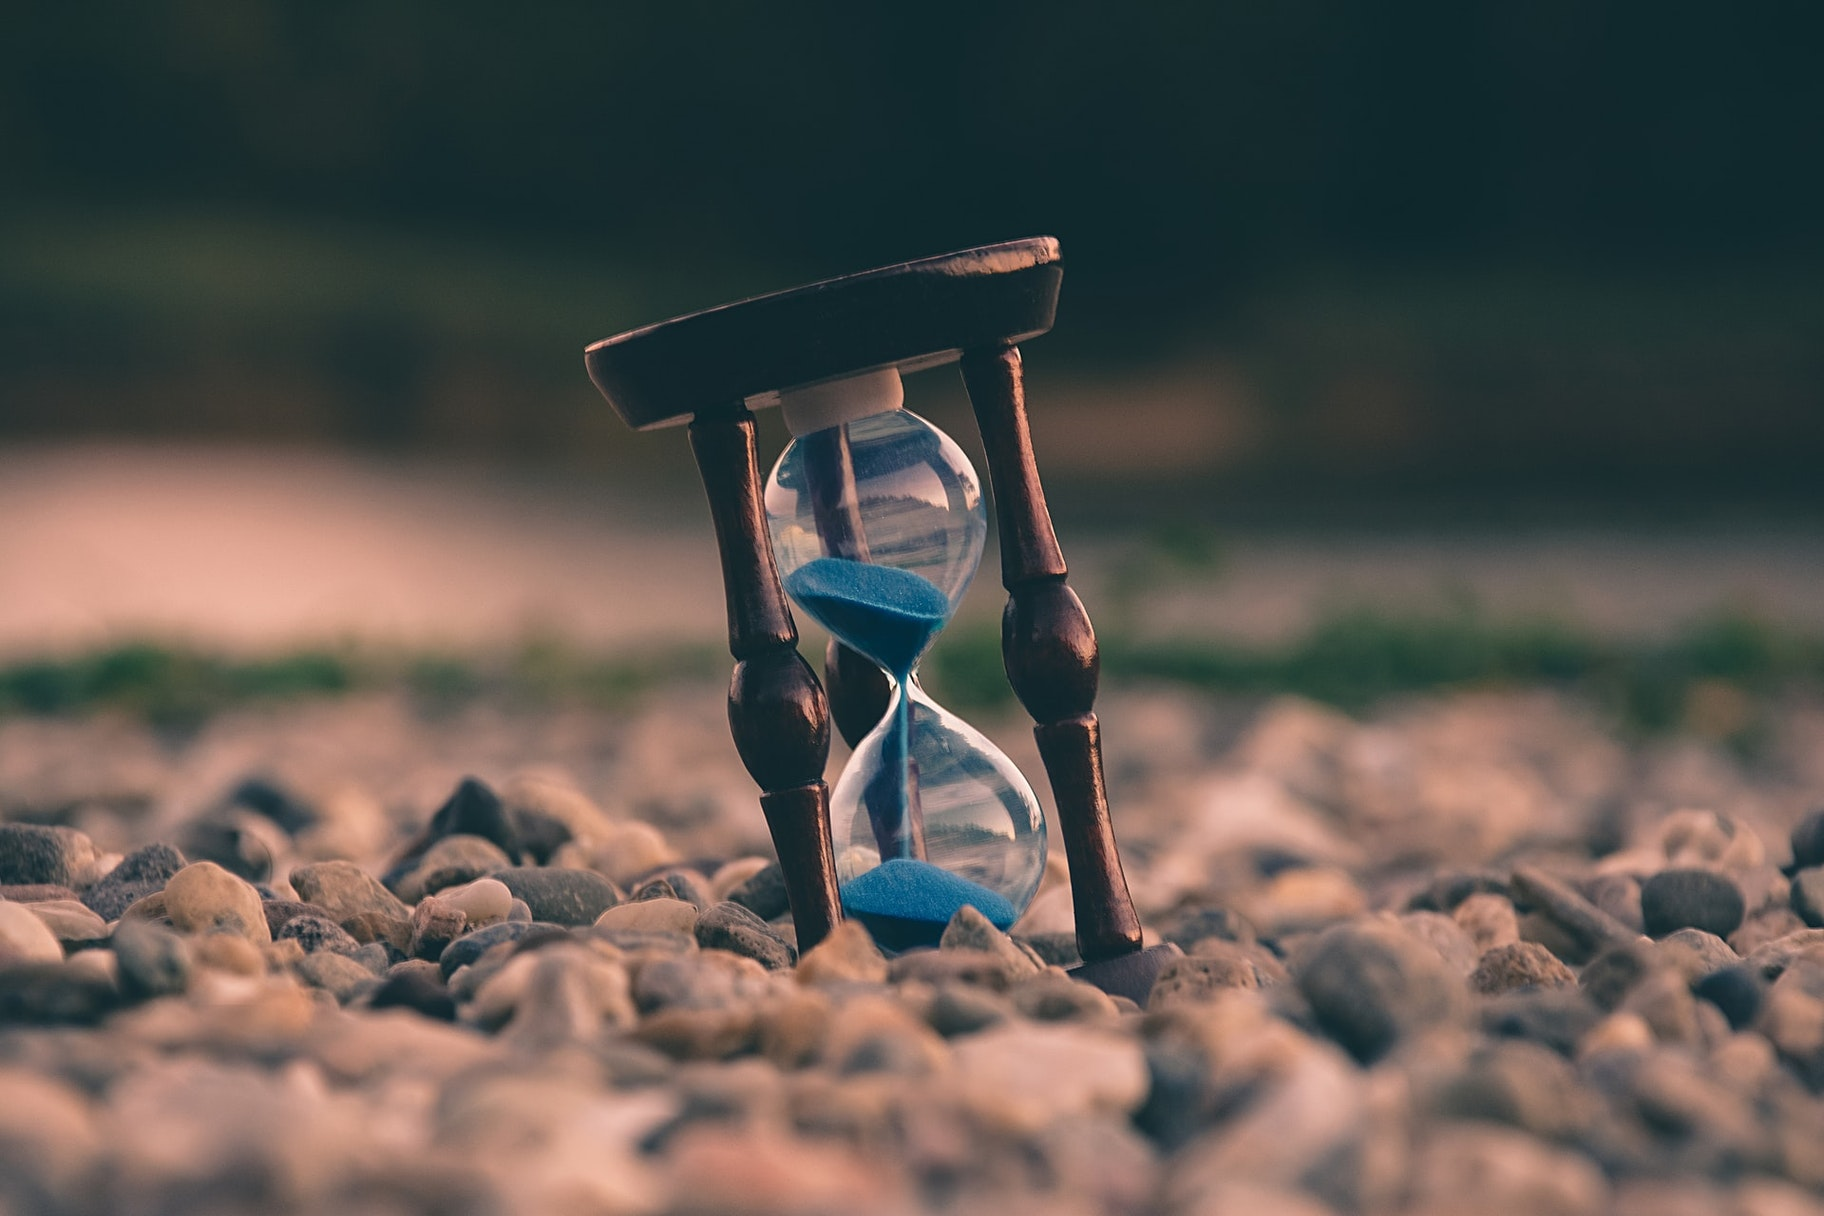 an hourglass on the ground